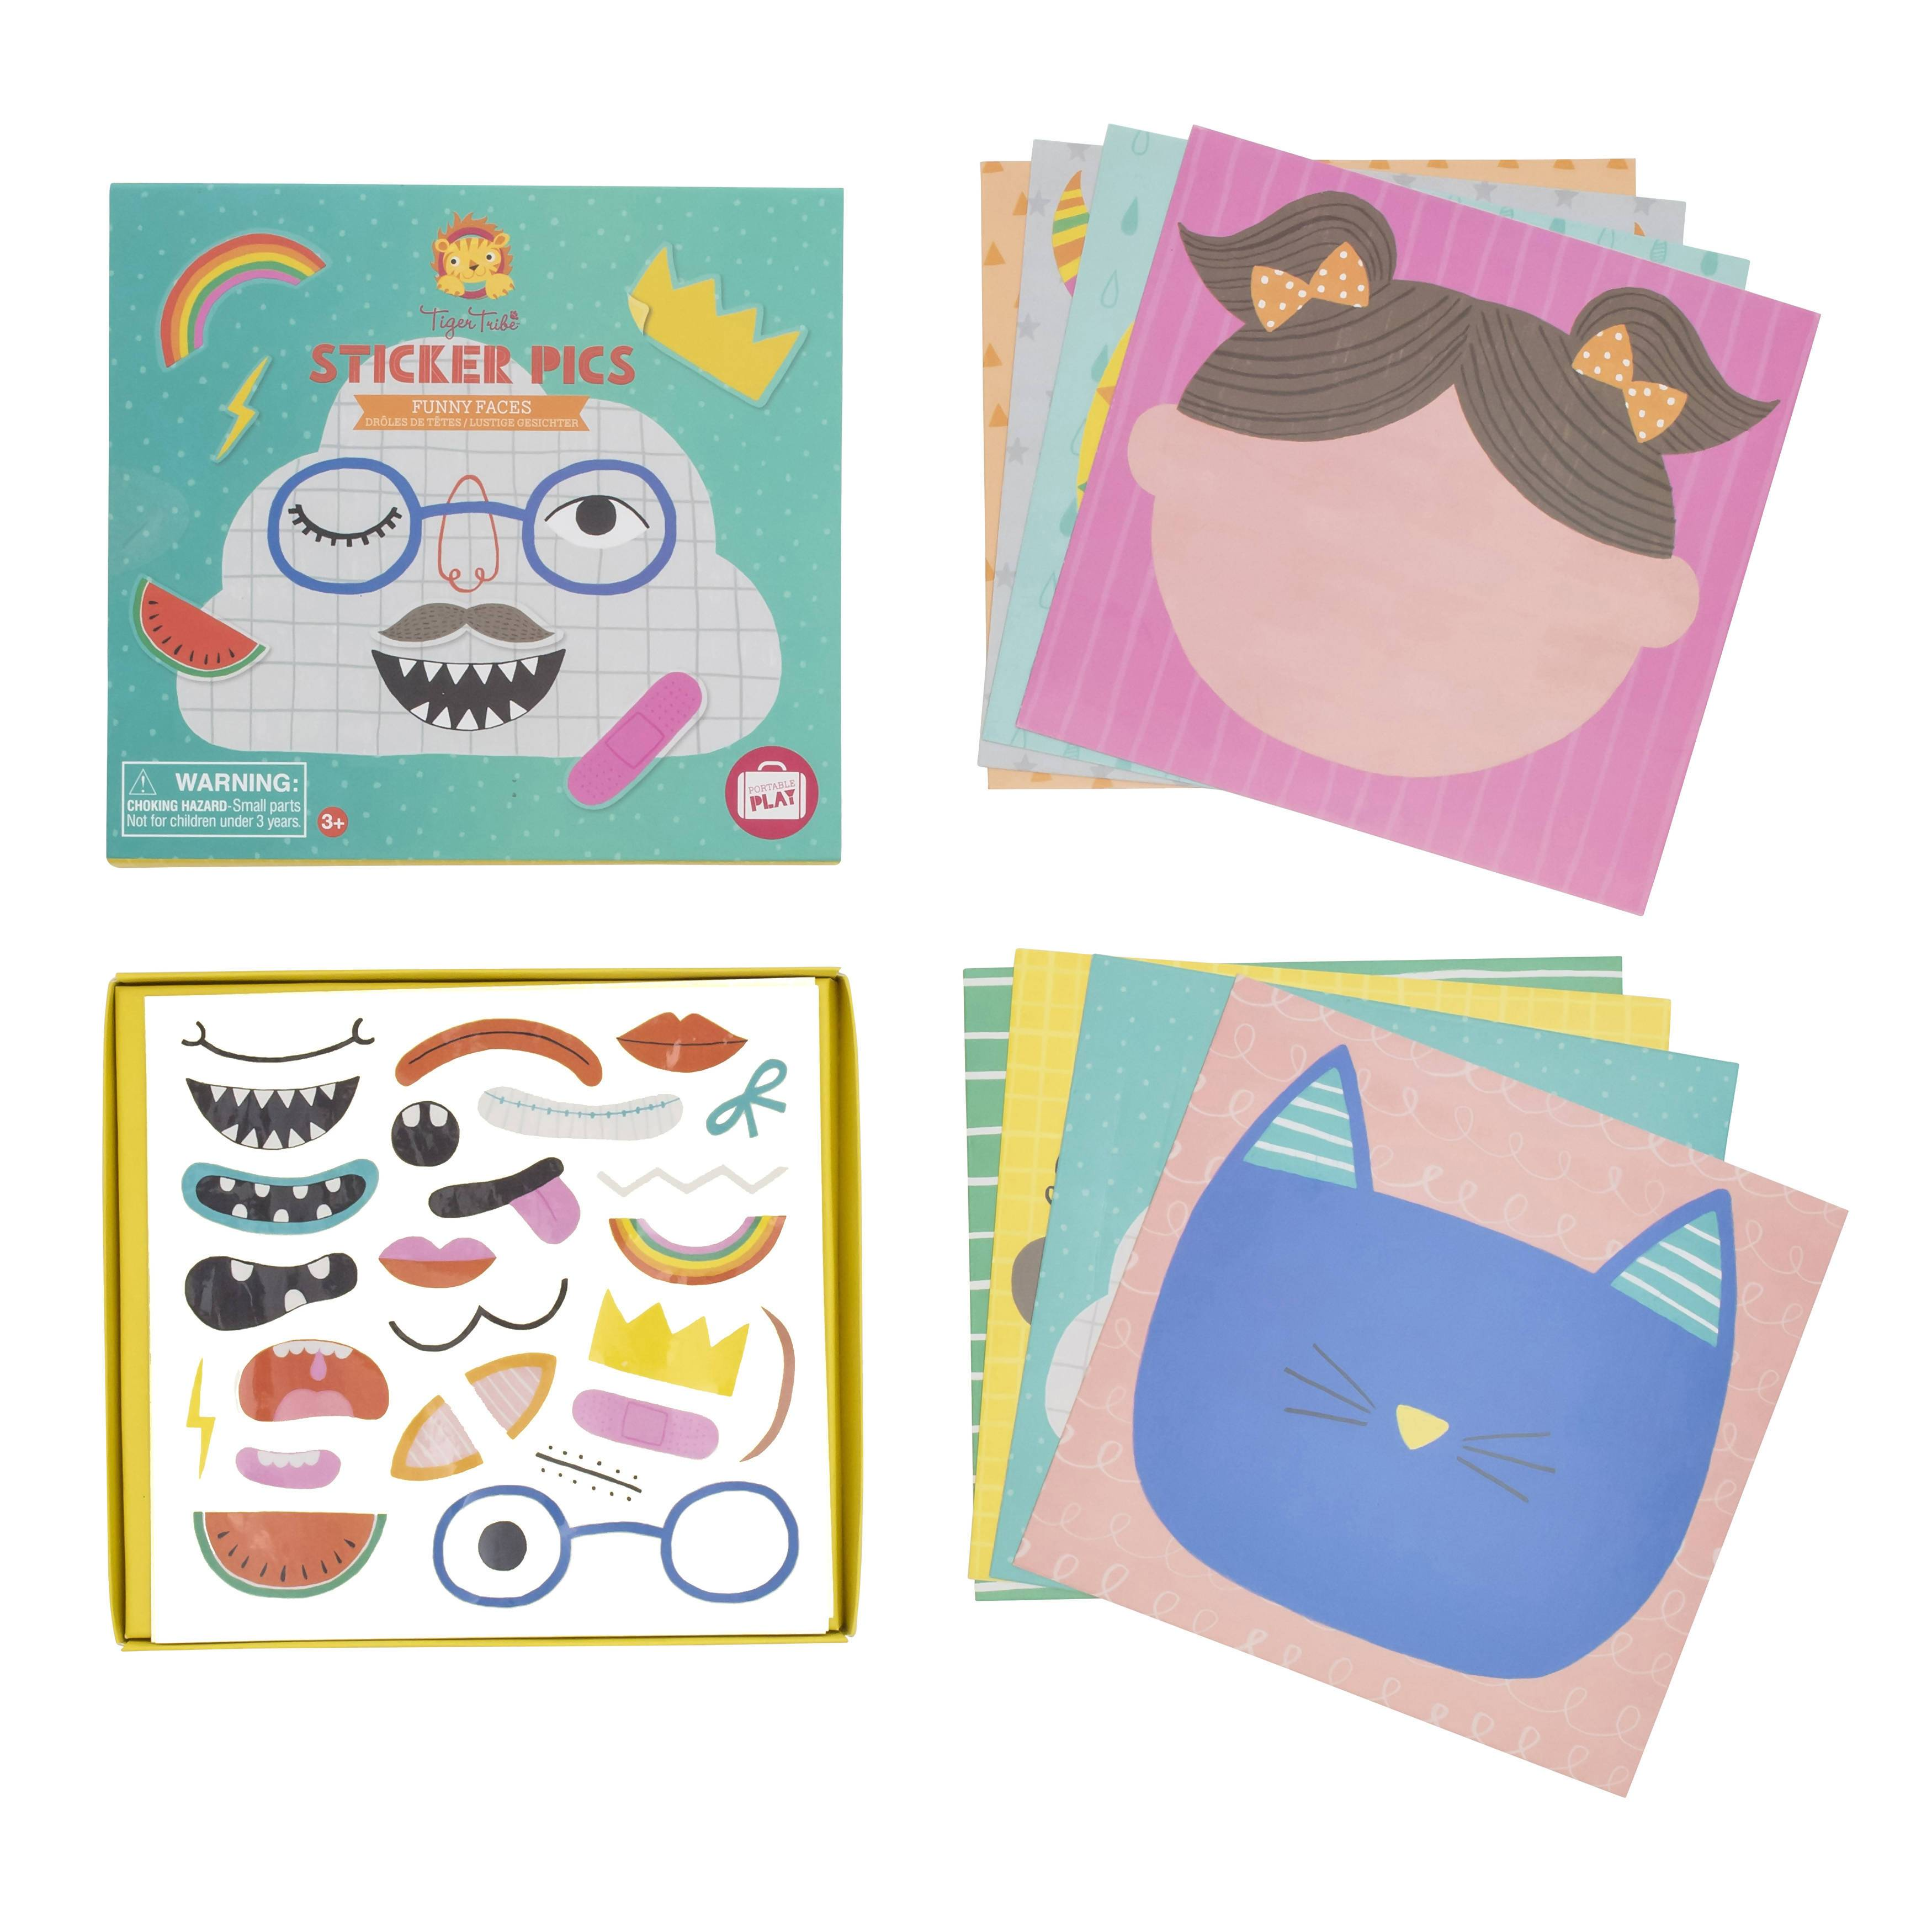 Sticker Pics - Funny Faces - Kids Activity Kits - The Children's Showcase - Naiise